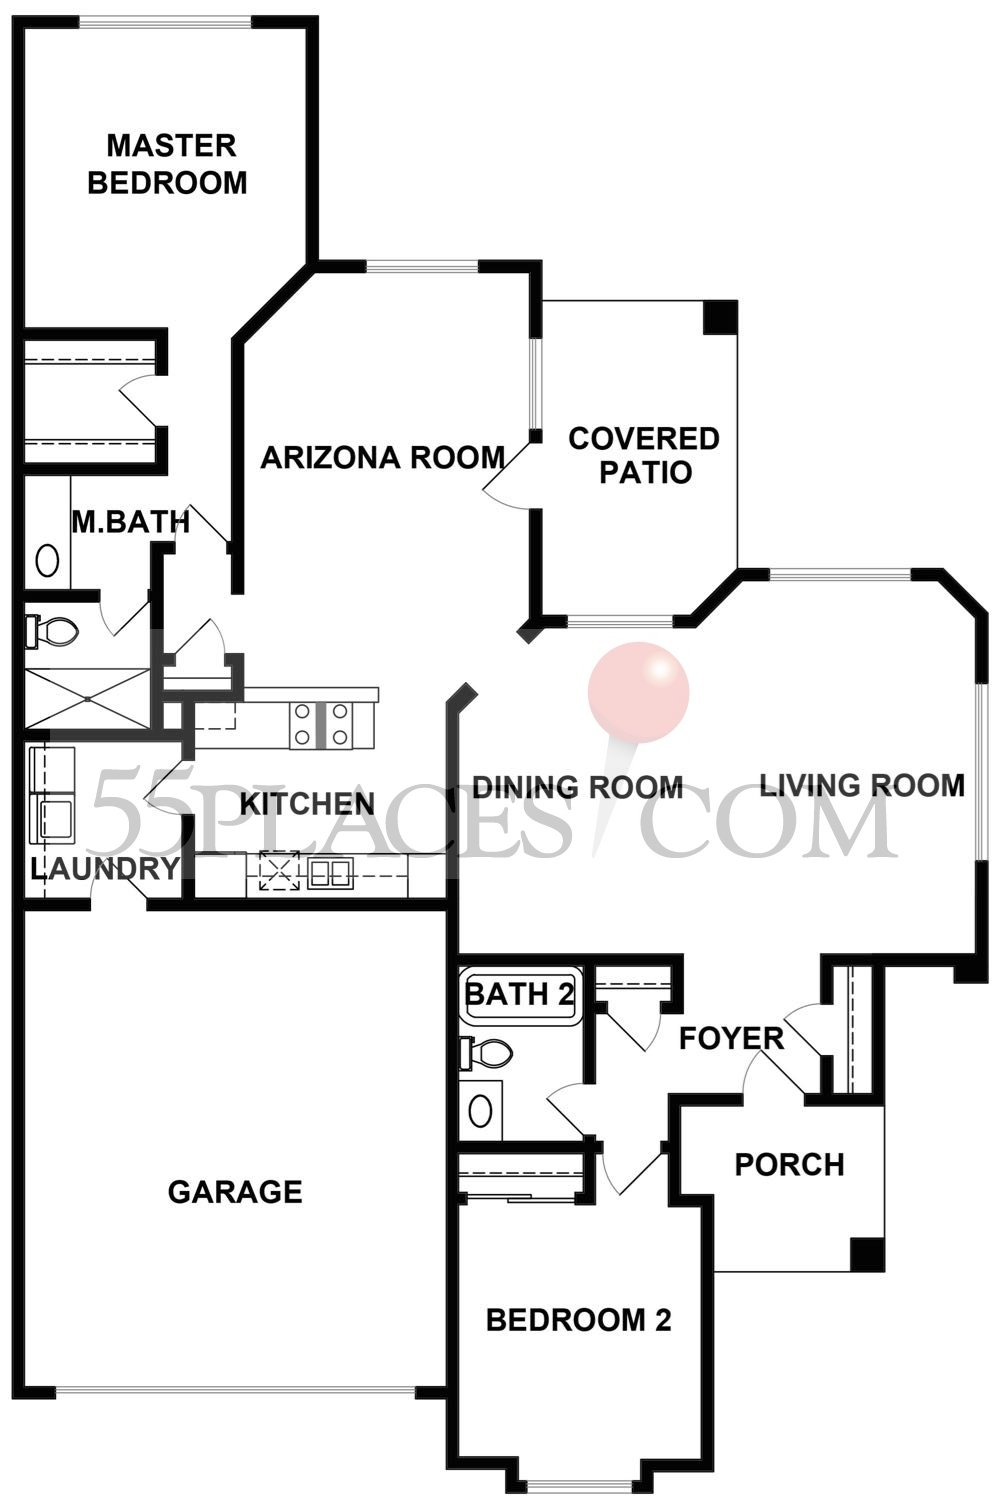 Patio homes floorplan 1541 sq ft sun city oro valley for Patio home floor plans free